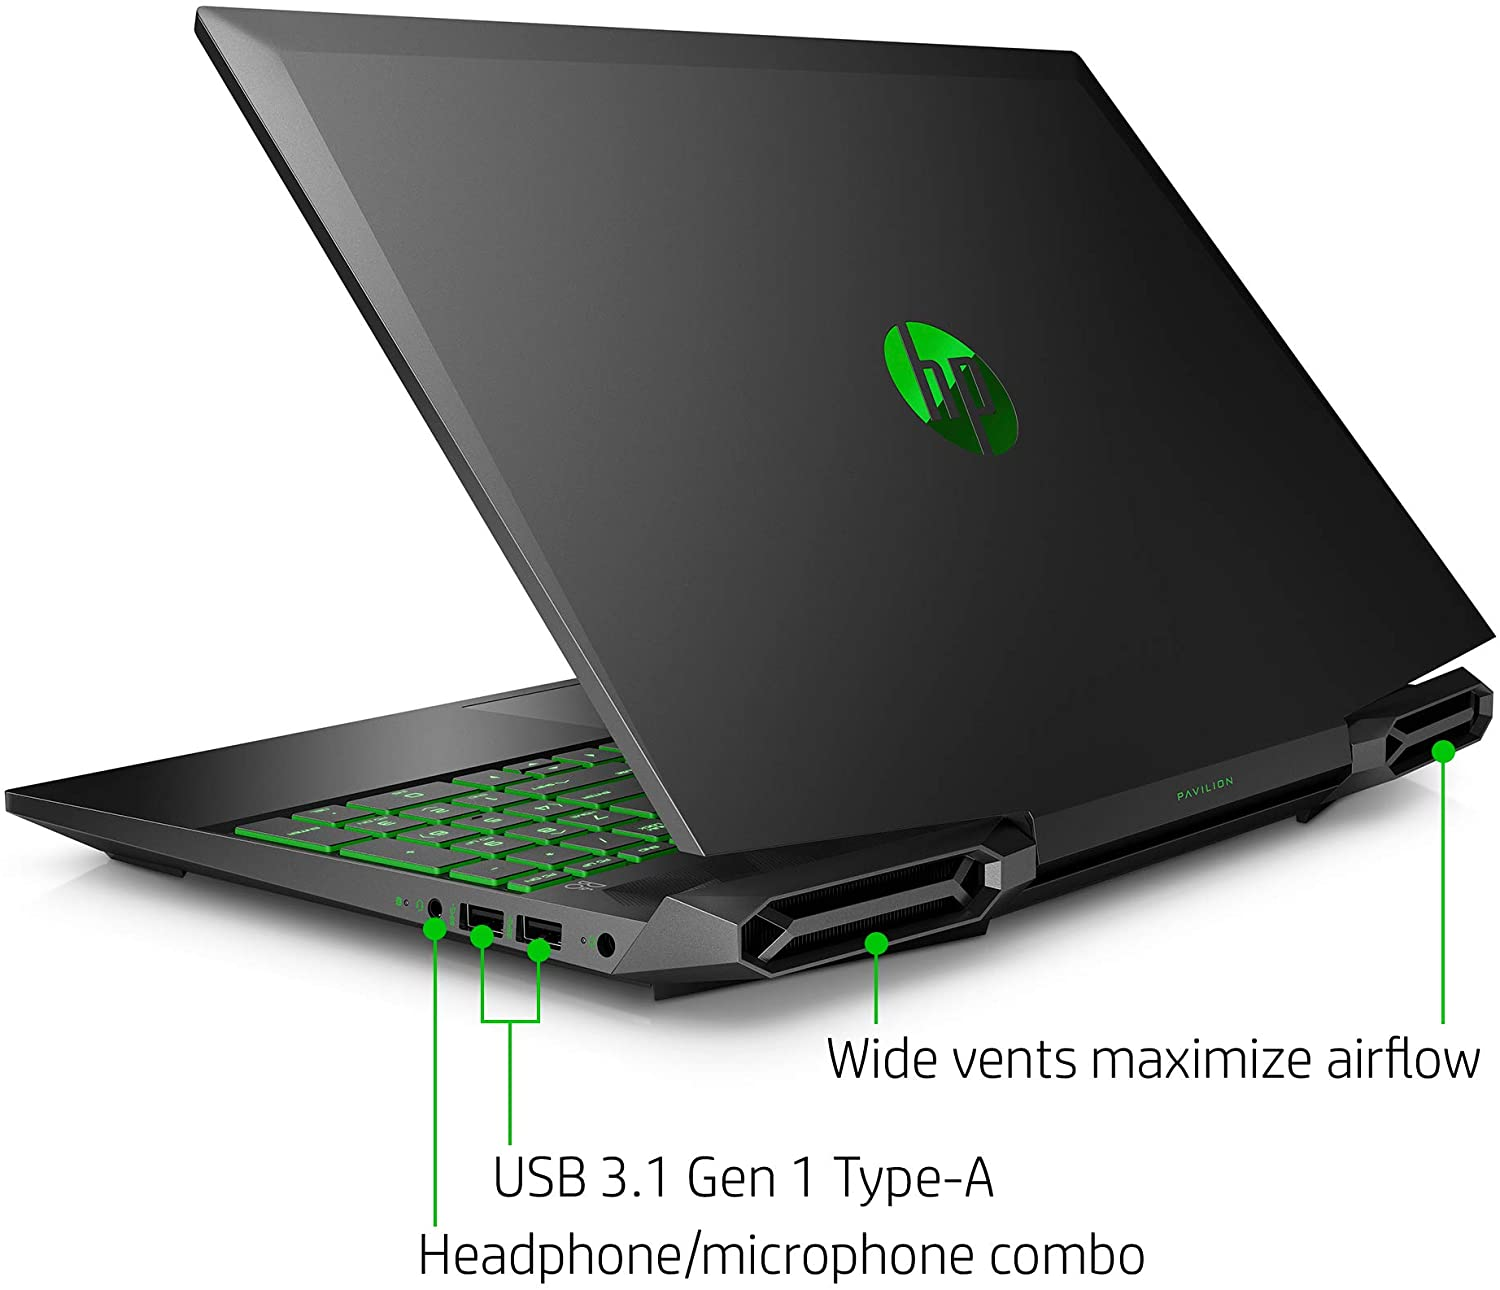 Back and side view of the HP Pavilion 15 gaming laptop.